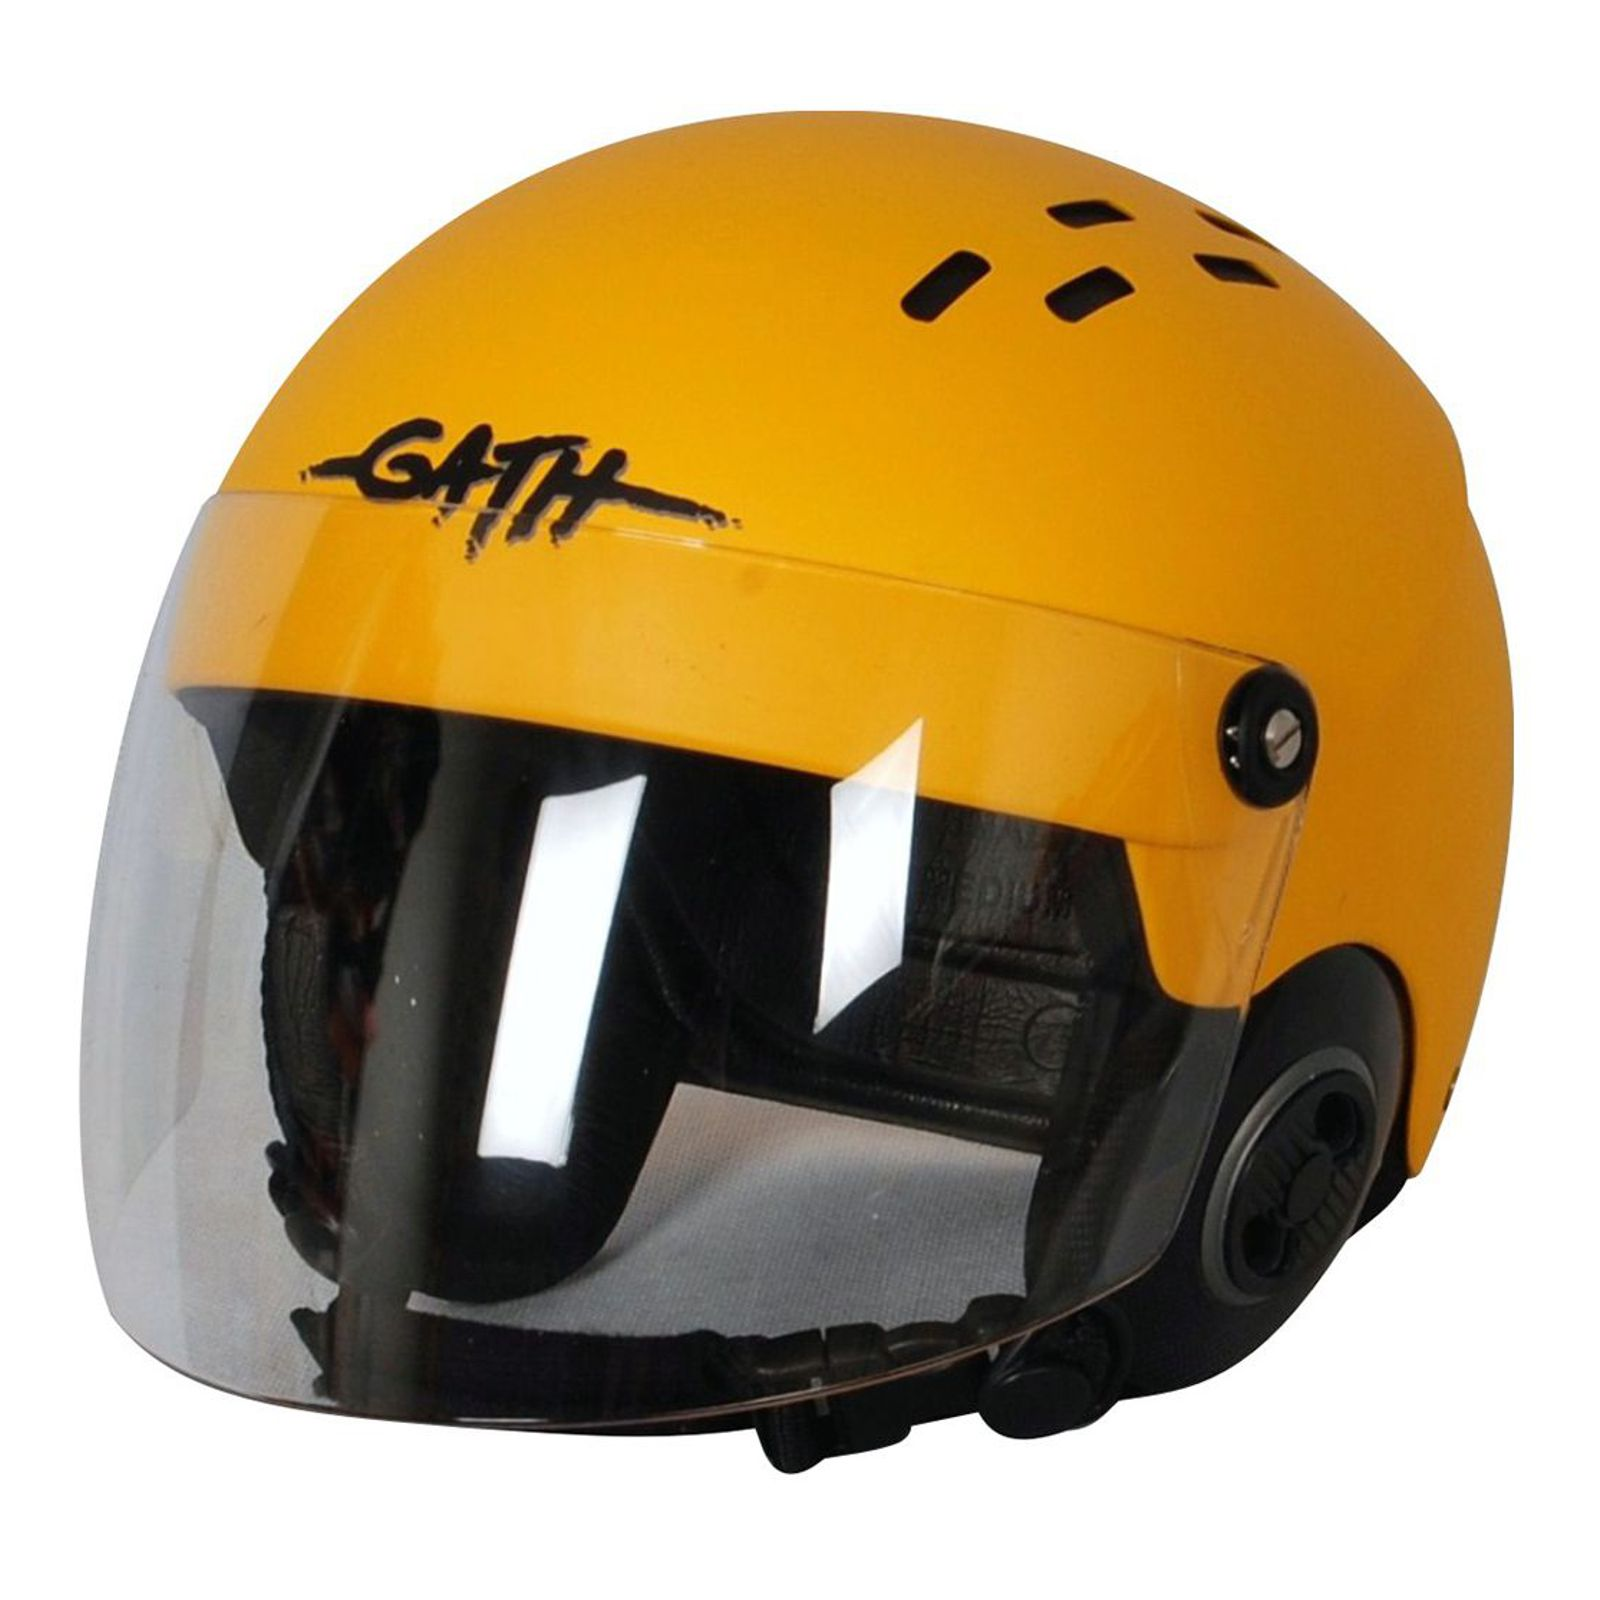 GATH Helm RESCUE Safety Gelb matt Gr XXL mit klarem Vollvisier